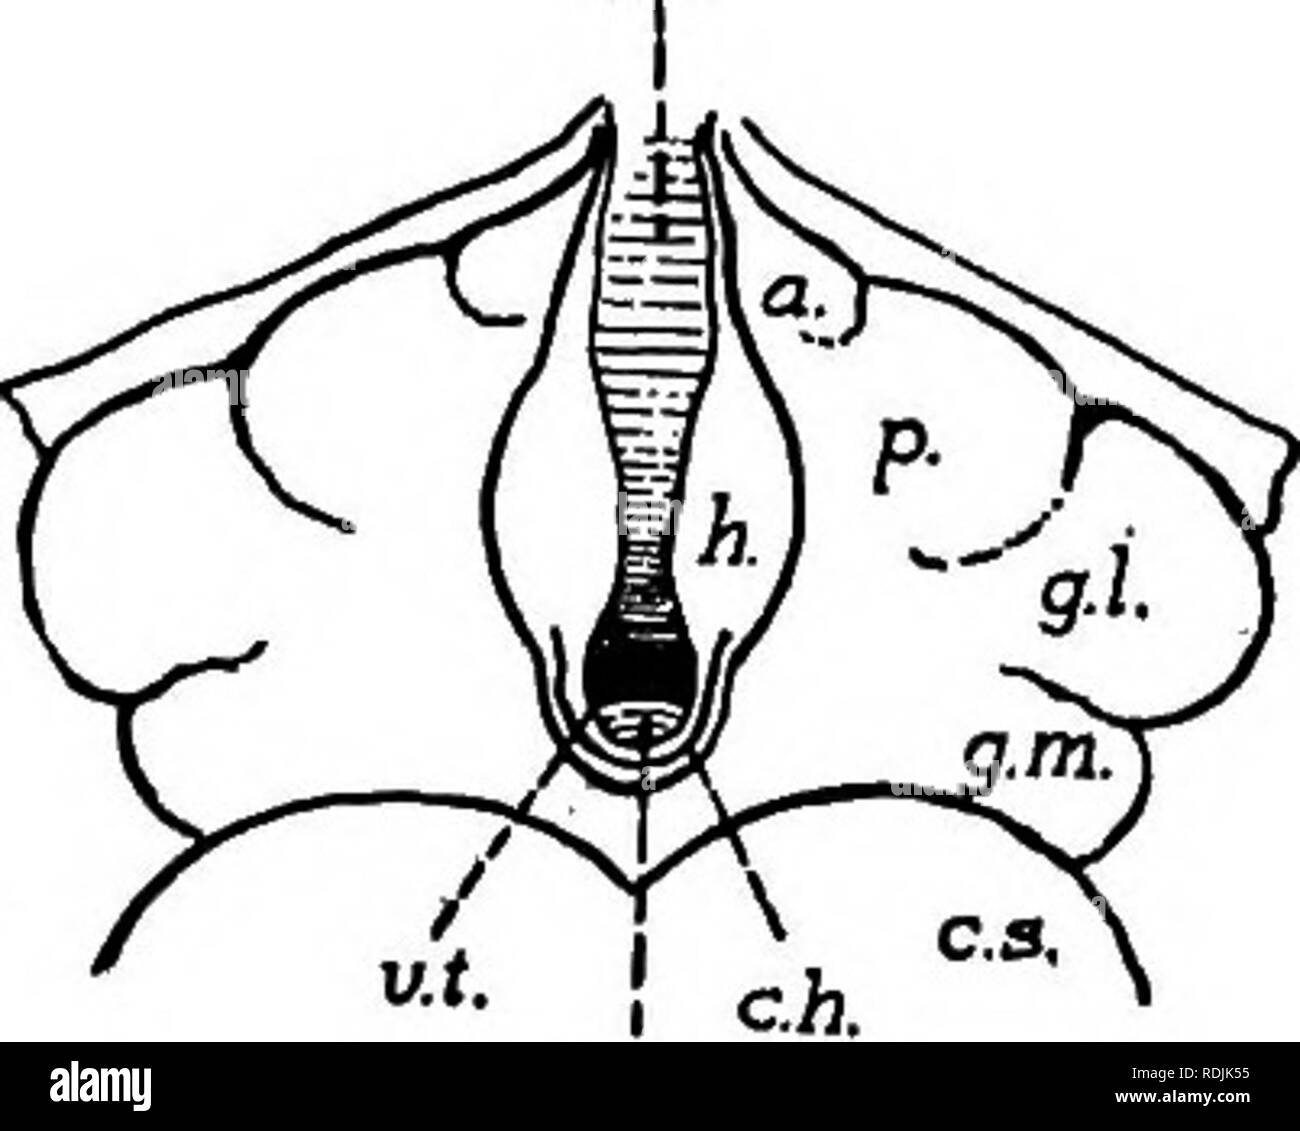 """. Practical anatomy of the rabbit : an elementary laboratory textbook in mammalian anatomy . Rabbits; Anatomy, Comparative. 274 Anatomy of the Rabbit.. By pressing apart the tips of the hemispheres, and removing thc'pineal body, the dorsal surface ot the thalamencephalon will be sufificiently exposed"""" to make out the following features: (f) The slit-like aperture appearing in the middle line after the removal of the pineal body represents the dorsal portion of the third ventricle (ventricujus tertius) (Fig. 84), the roof of which is formed anteriorly by the superficial portion of the chor - Stock Image"""